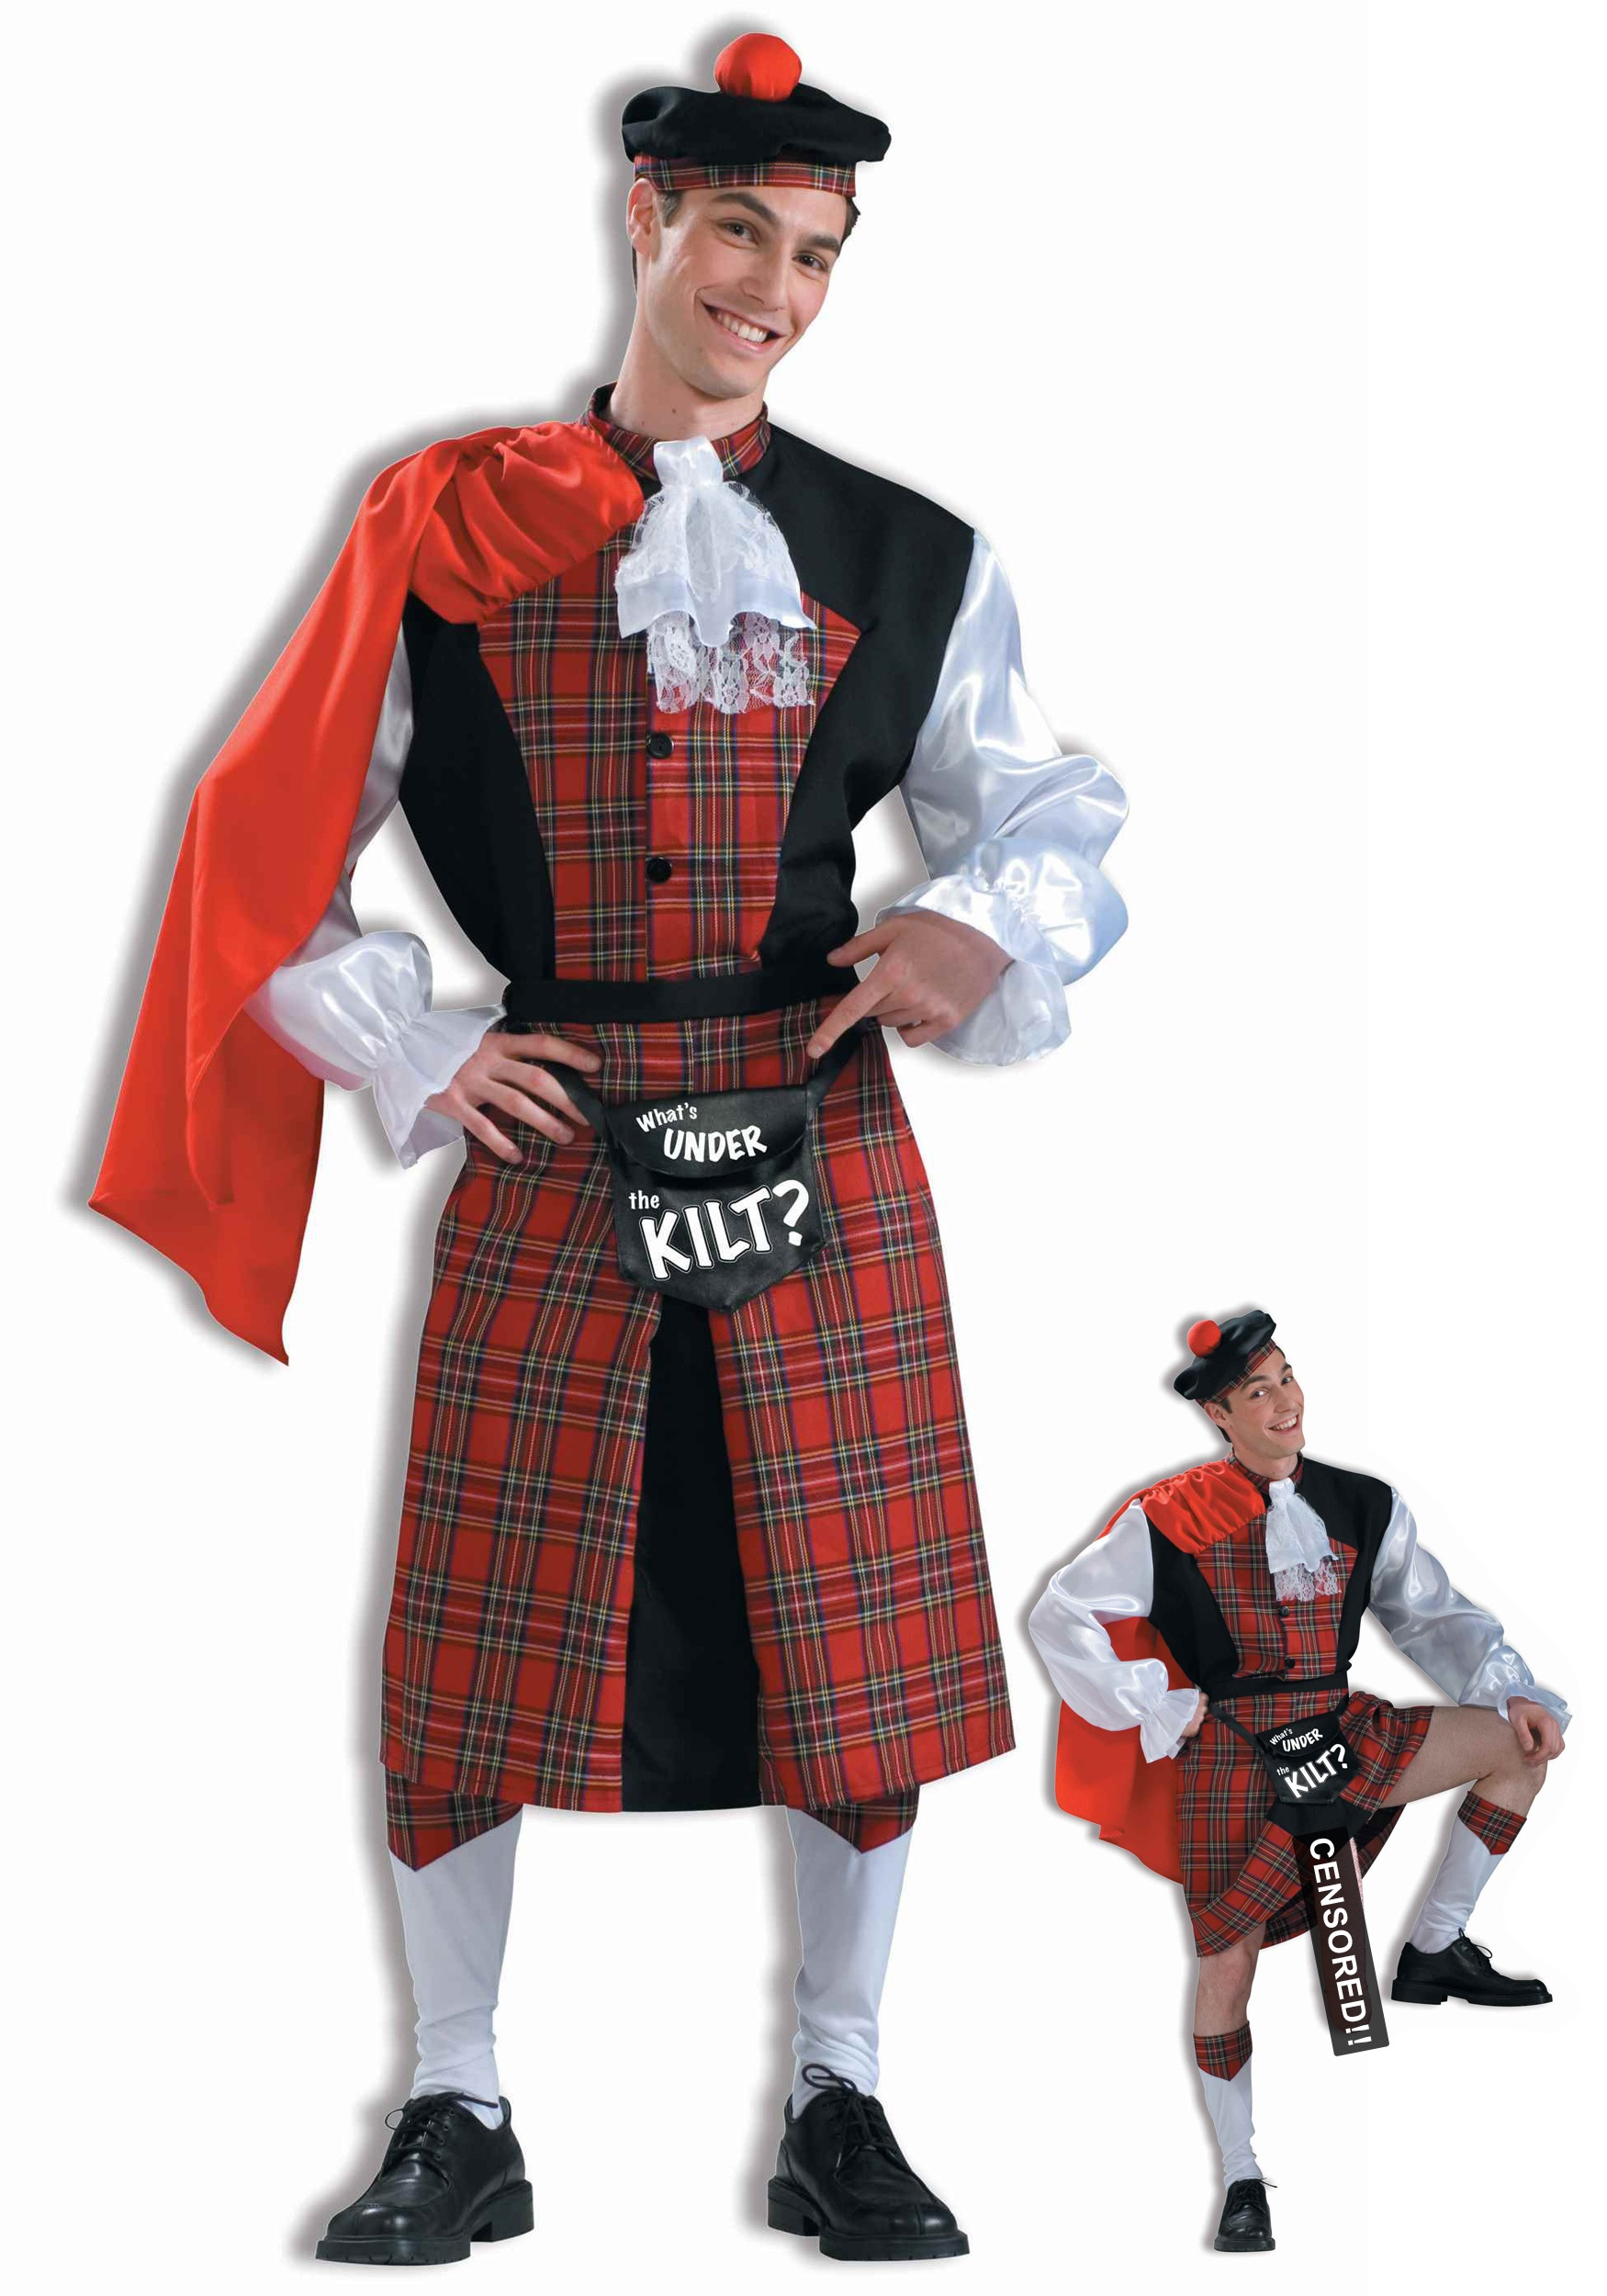 What39;s Under the Kilt Mens Costume  Adult Funny Halloween Costumes